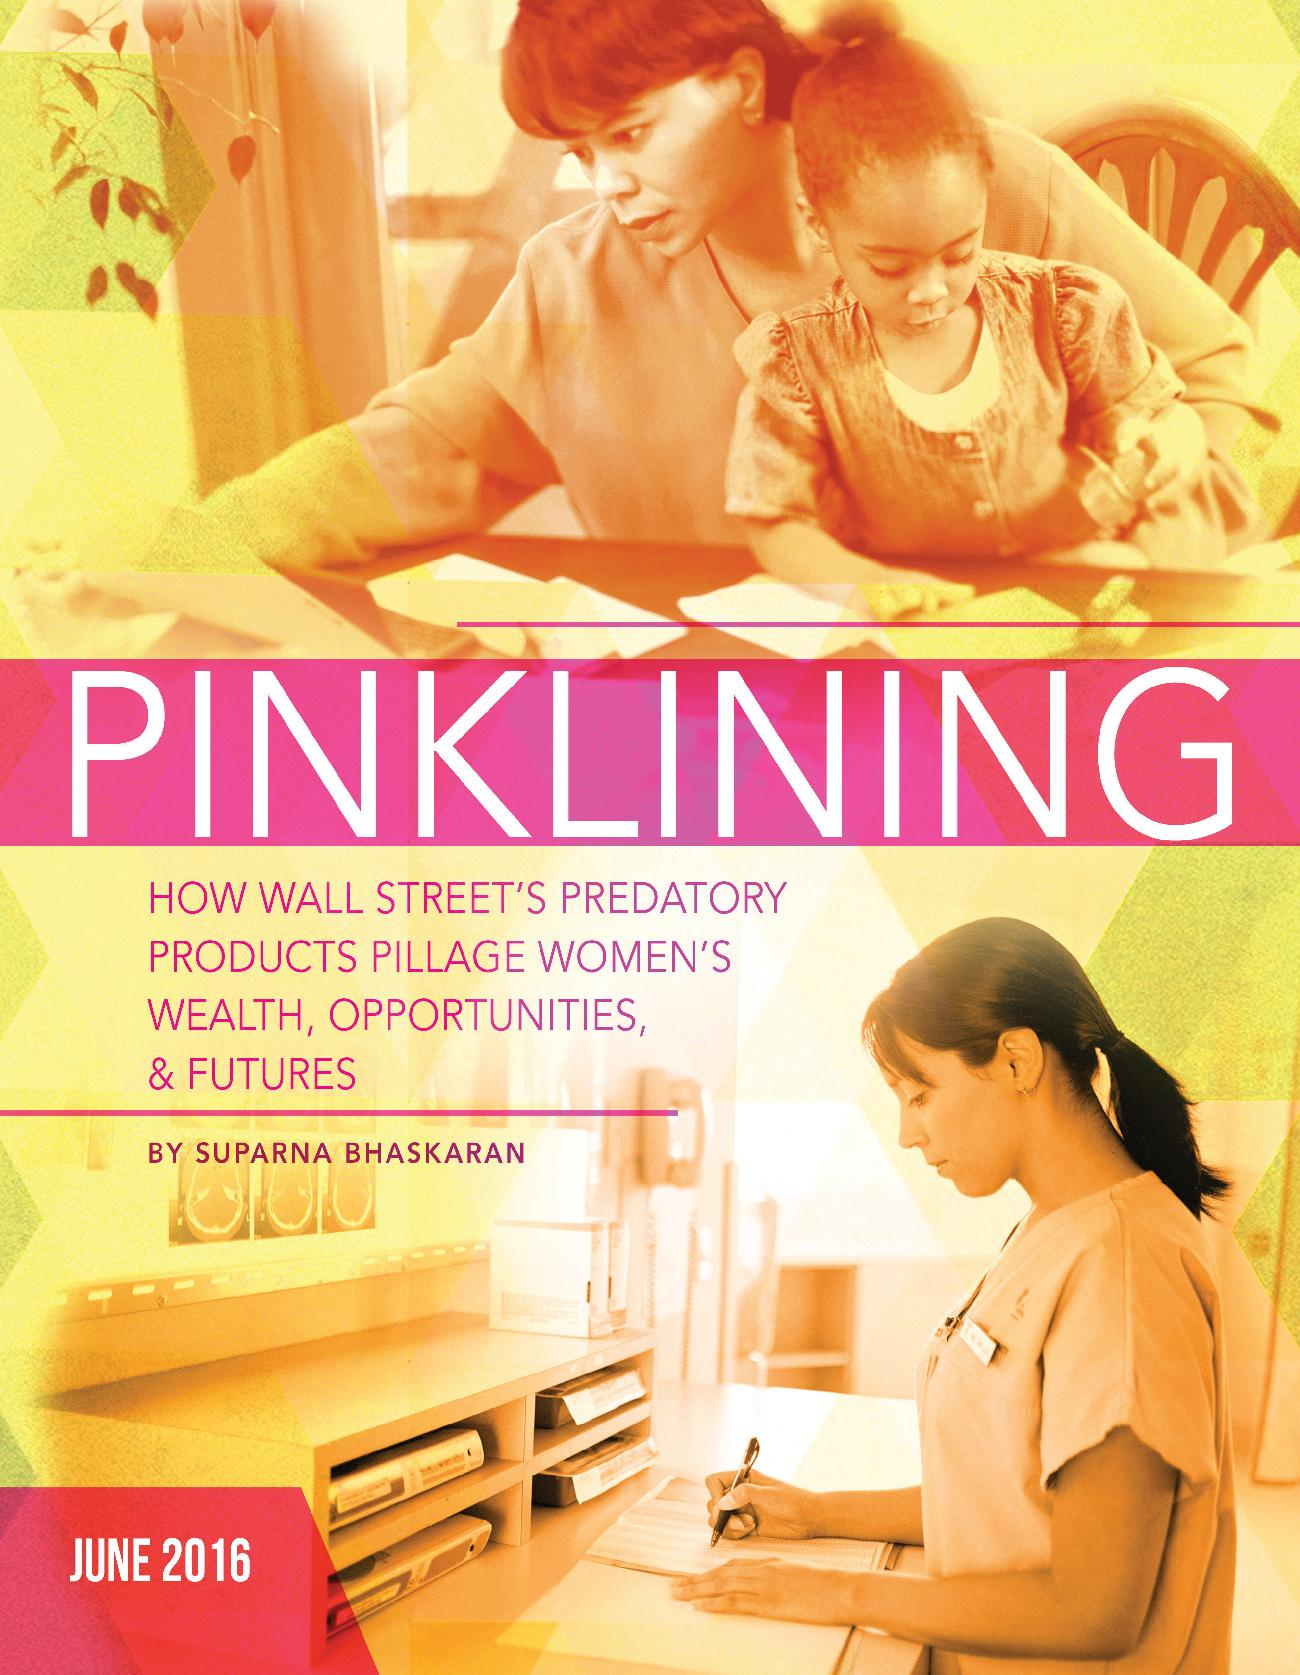 acce_pinklining_VIEW-page-001.jpg